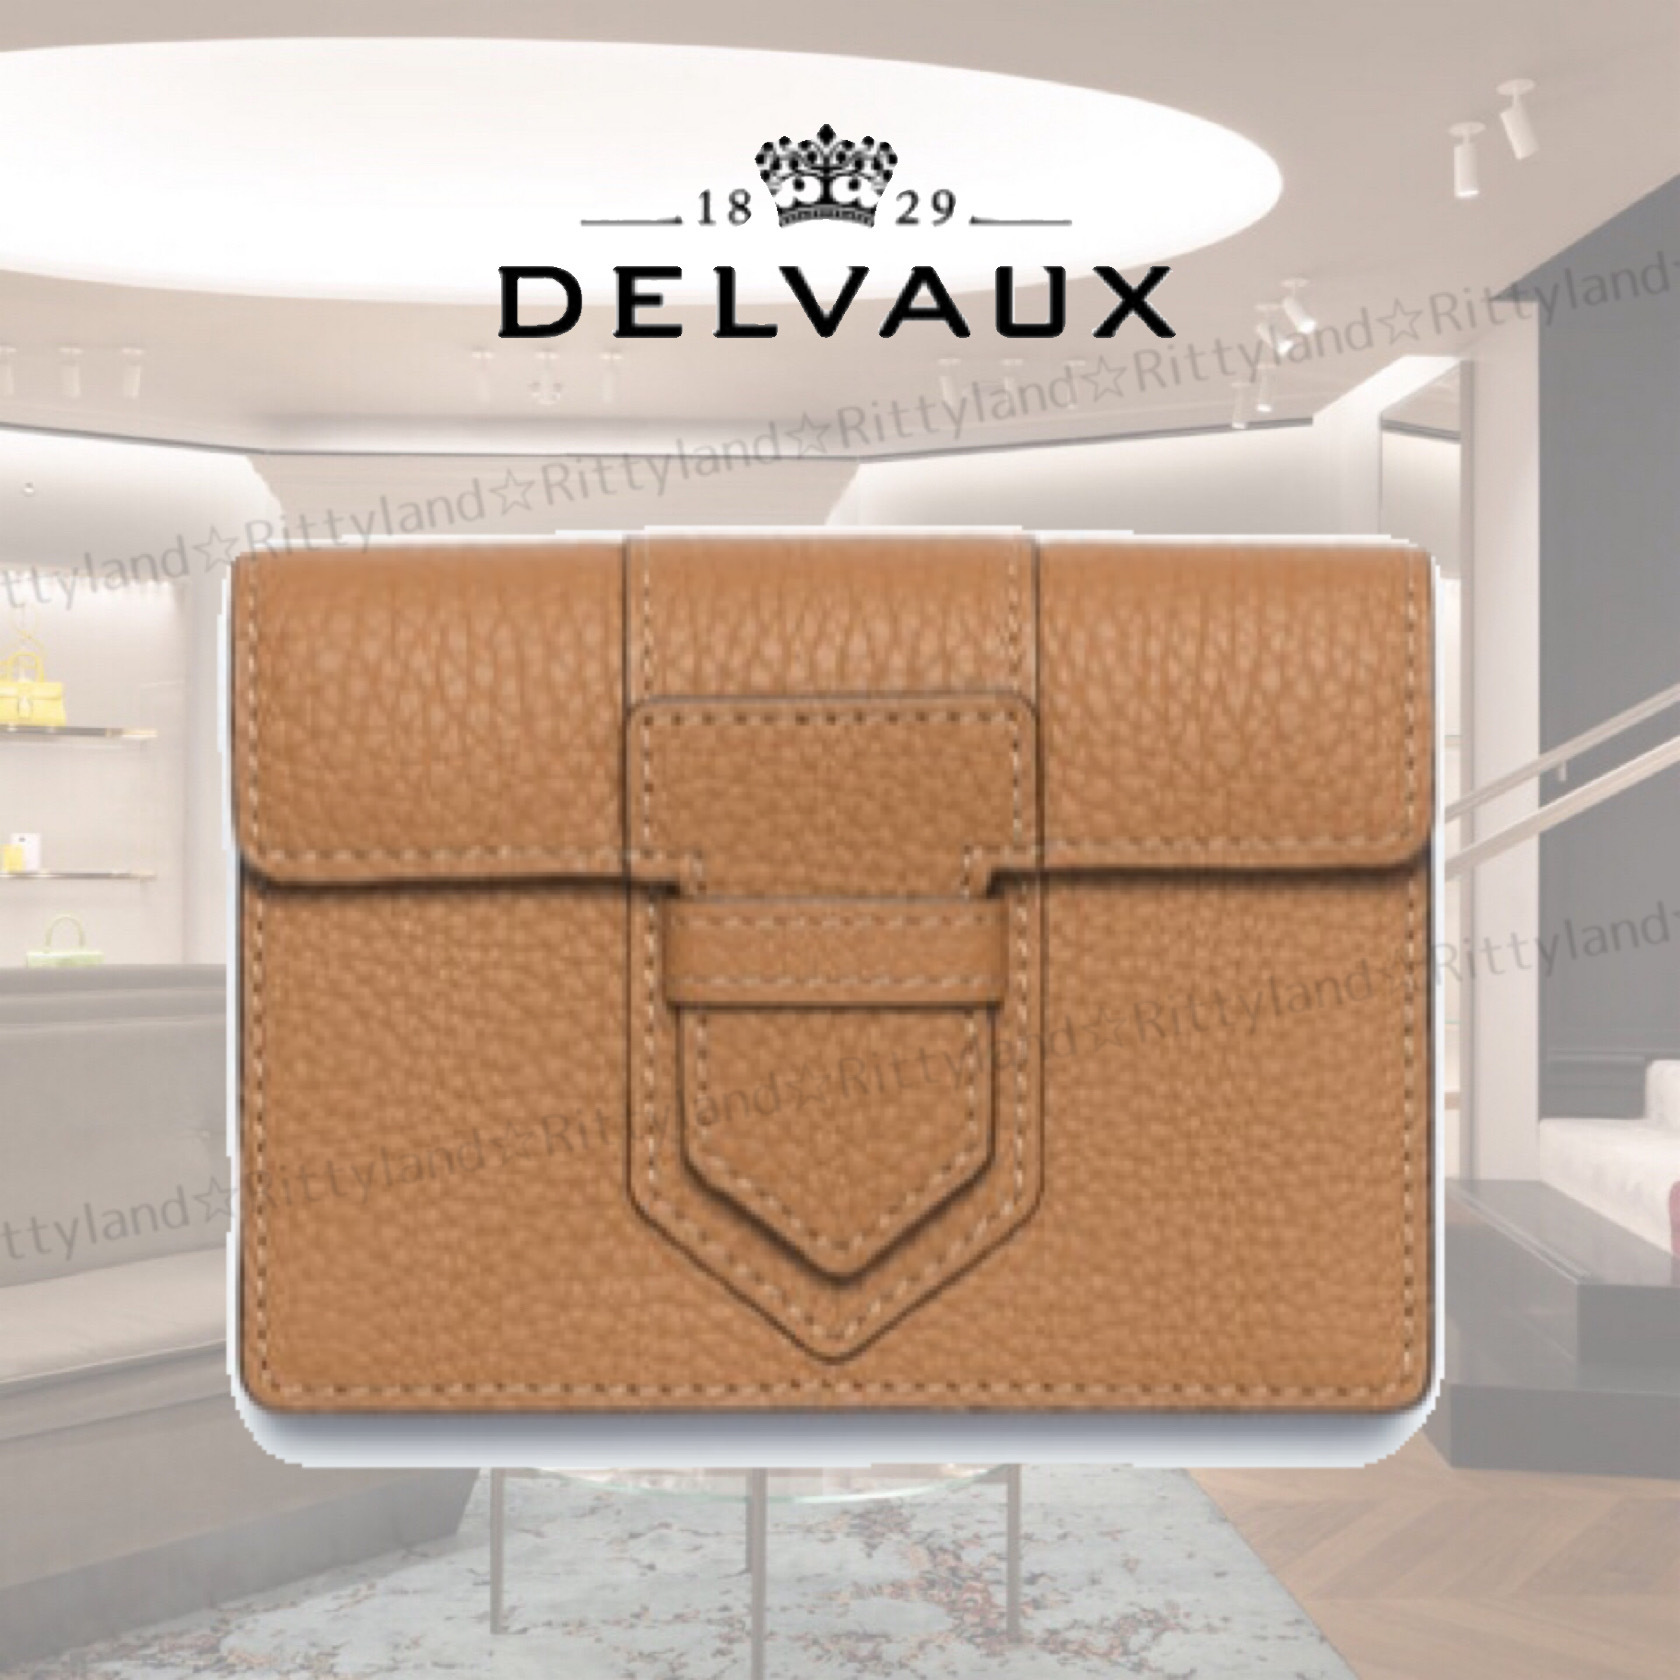 【21SS★新作】★DELVAUX★Presse Card Holder Taurillon Soft (DELVAUX/カードケース・名刺入れ) 66538605